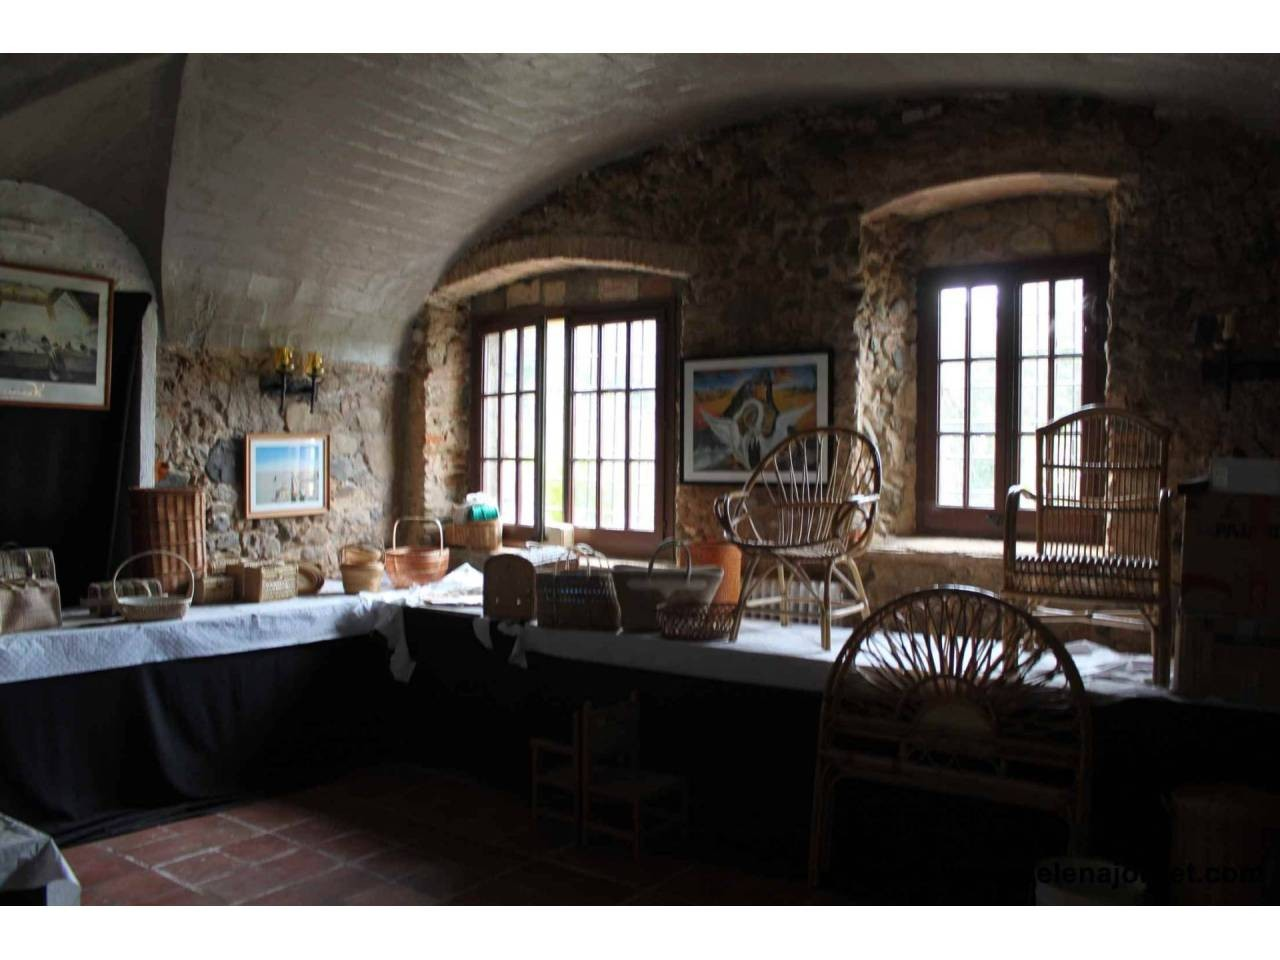 XVII century farmhouse to be refurbished with attached restaurant - 1003